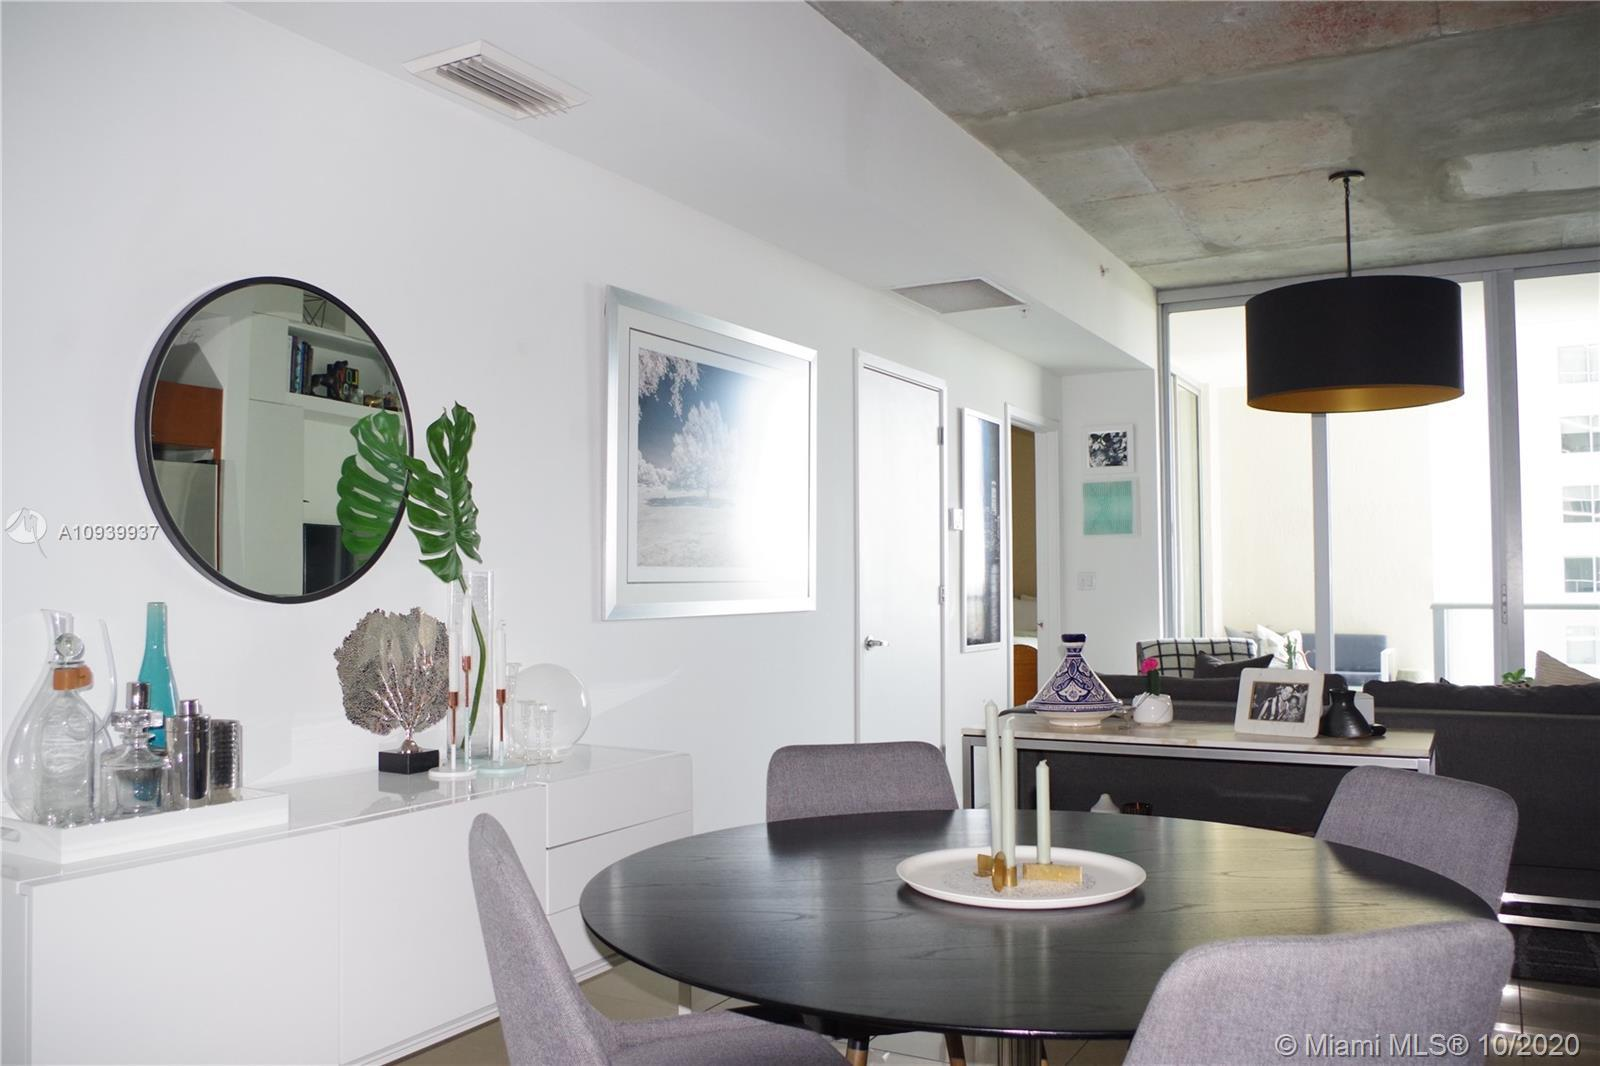 Come see this beautiful 1BR /1Bth condo! NY architect & Miami based designer have added all the righ